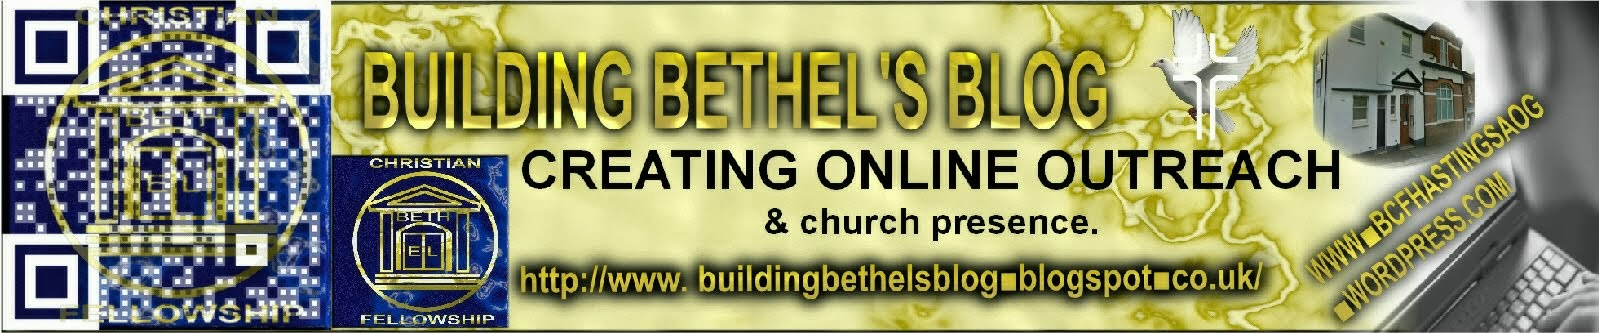 Building Church Outreach via the Internet